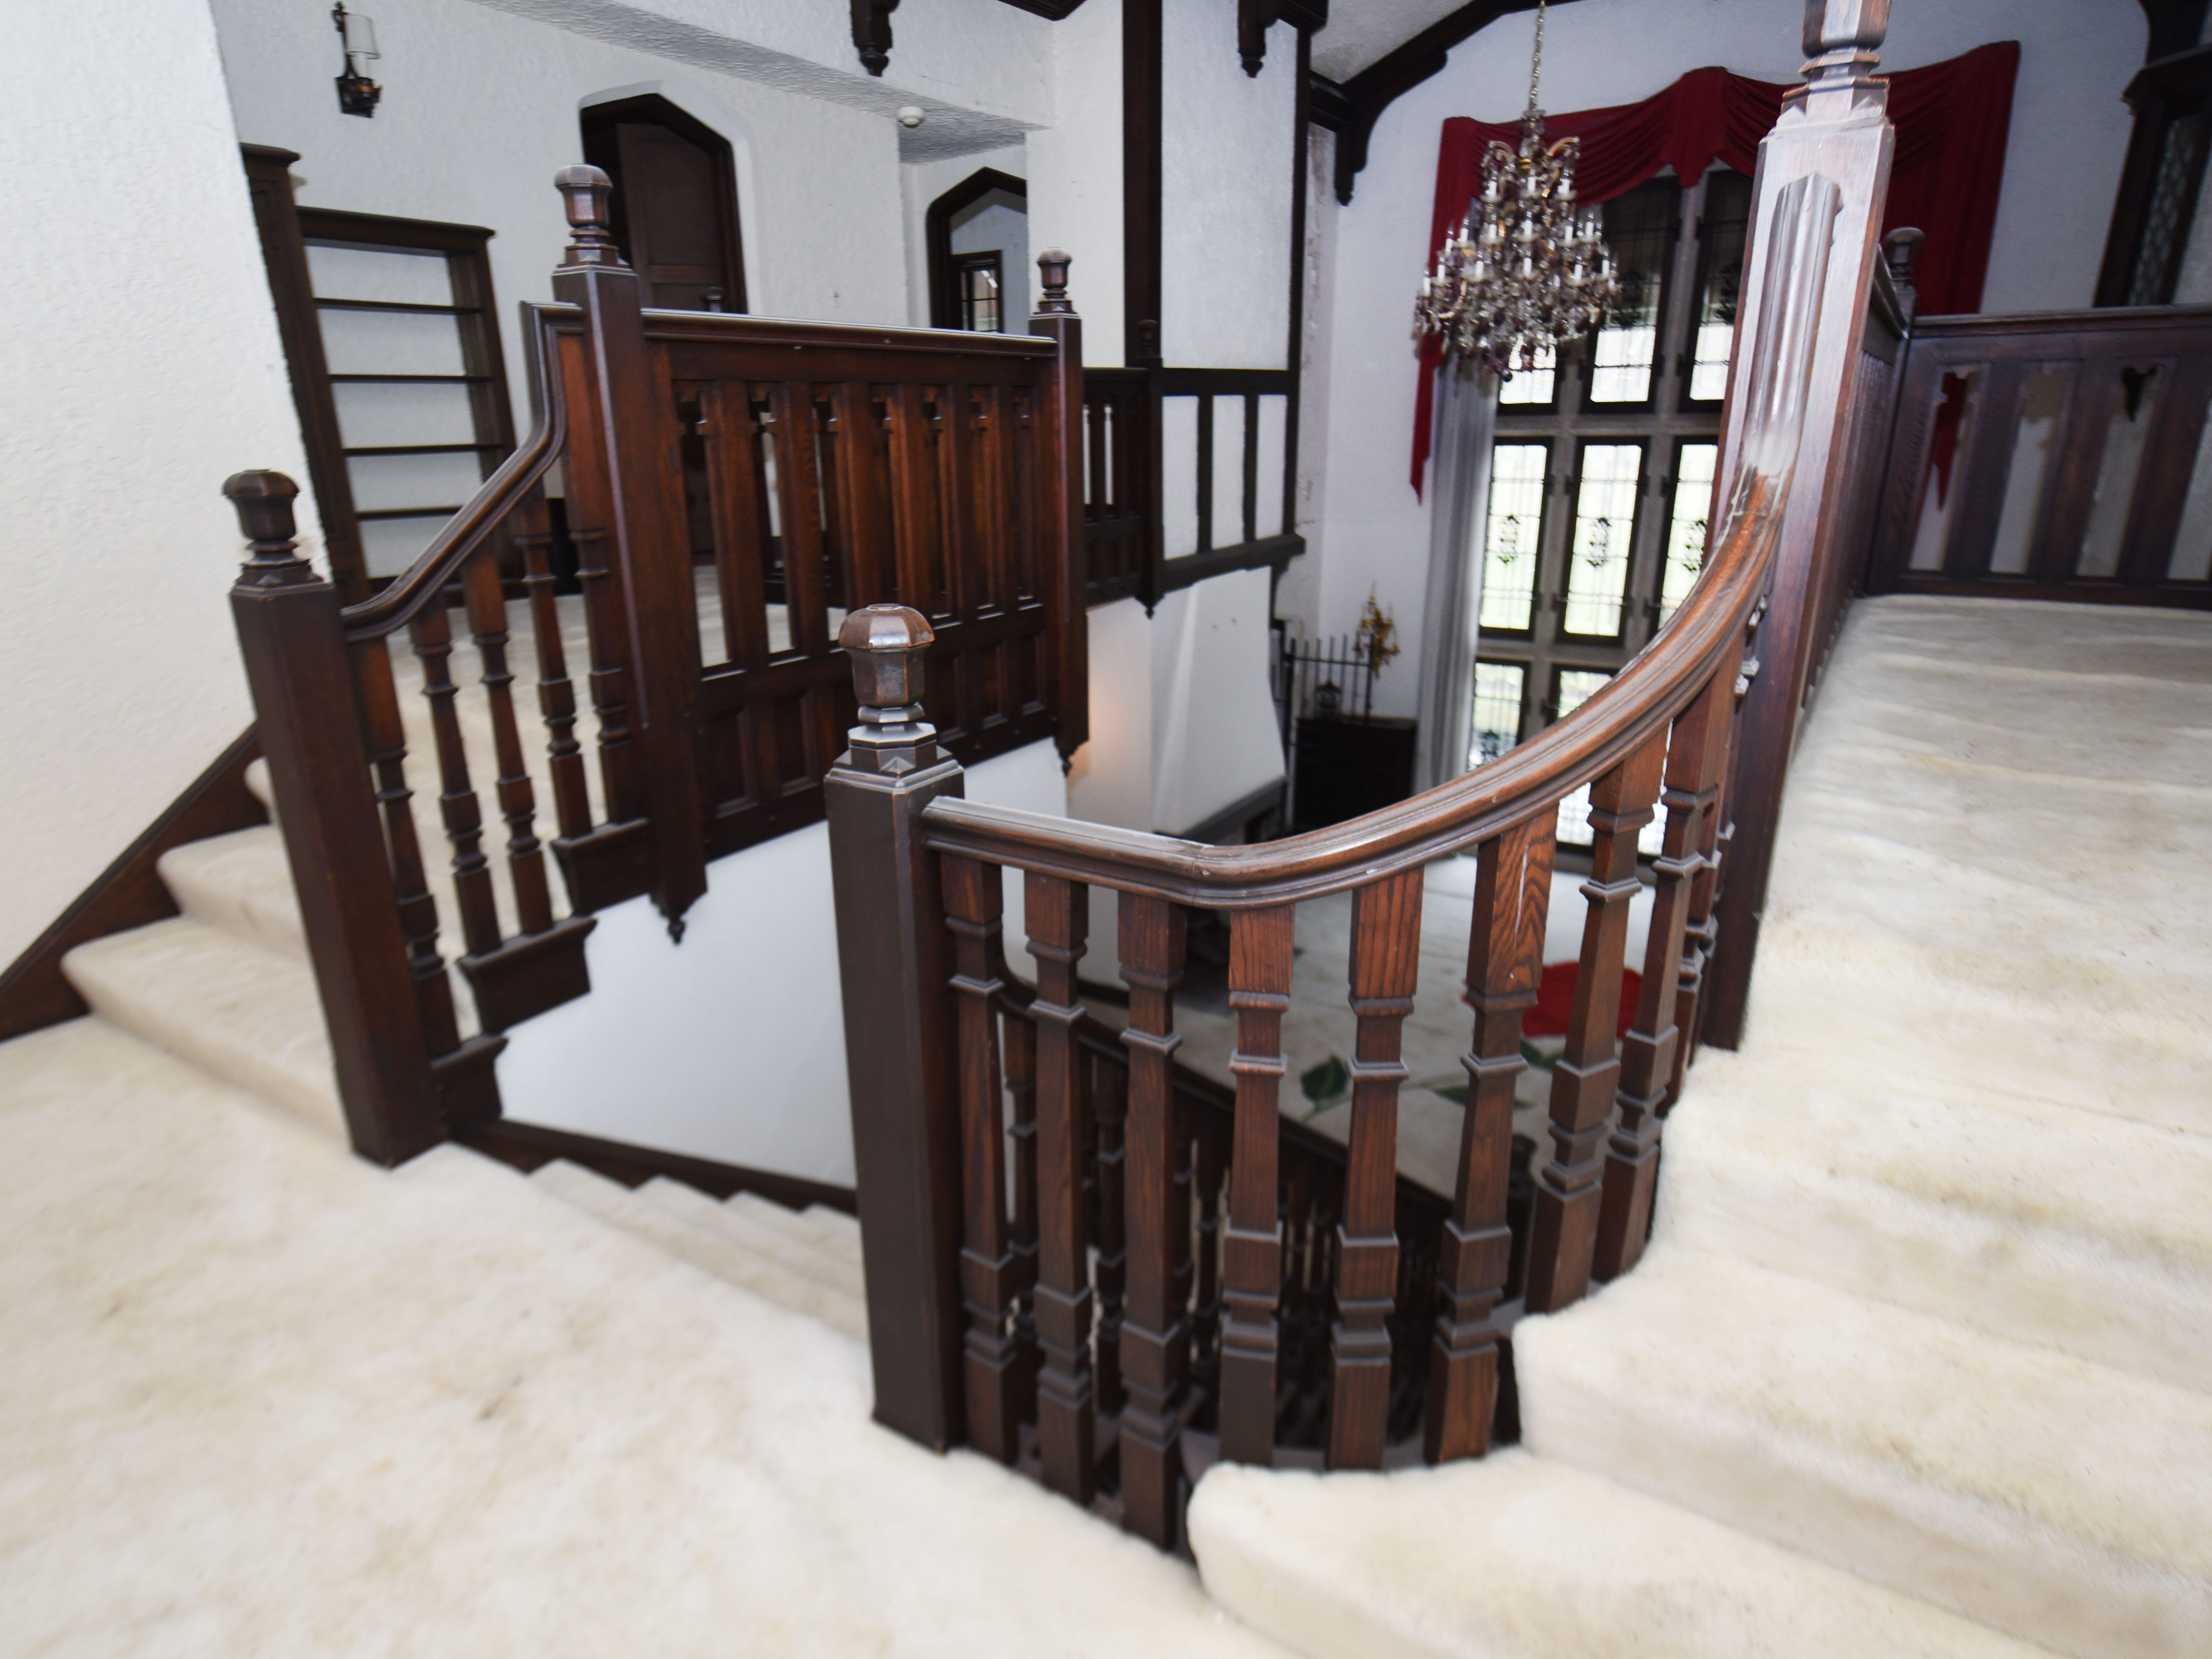 The carpeting extends to the second floor, which has a curved balustrade.